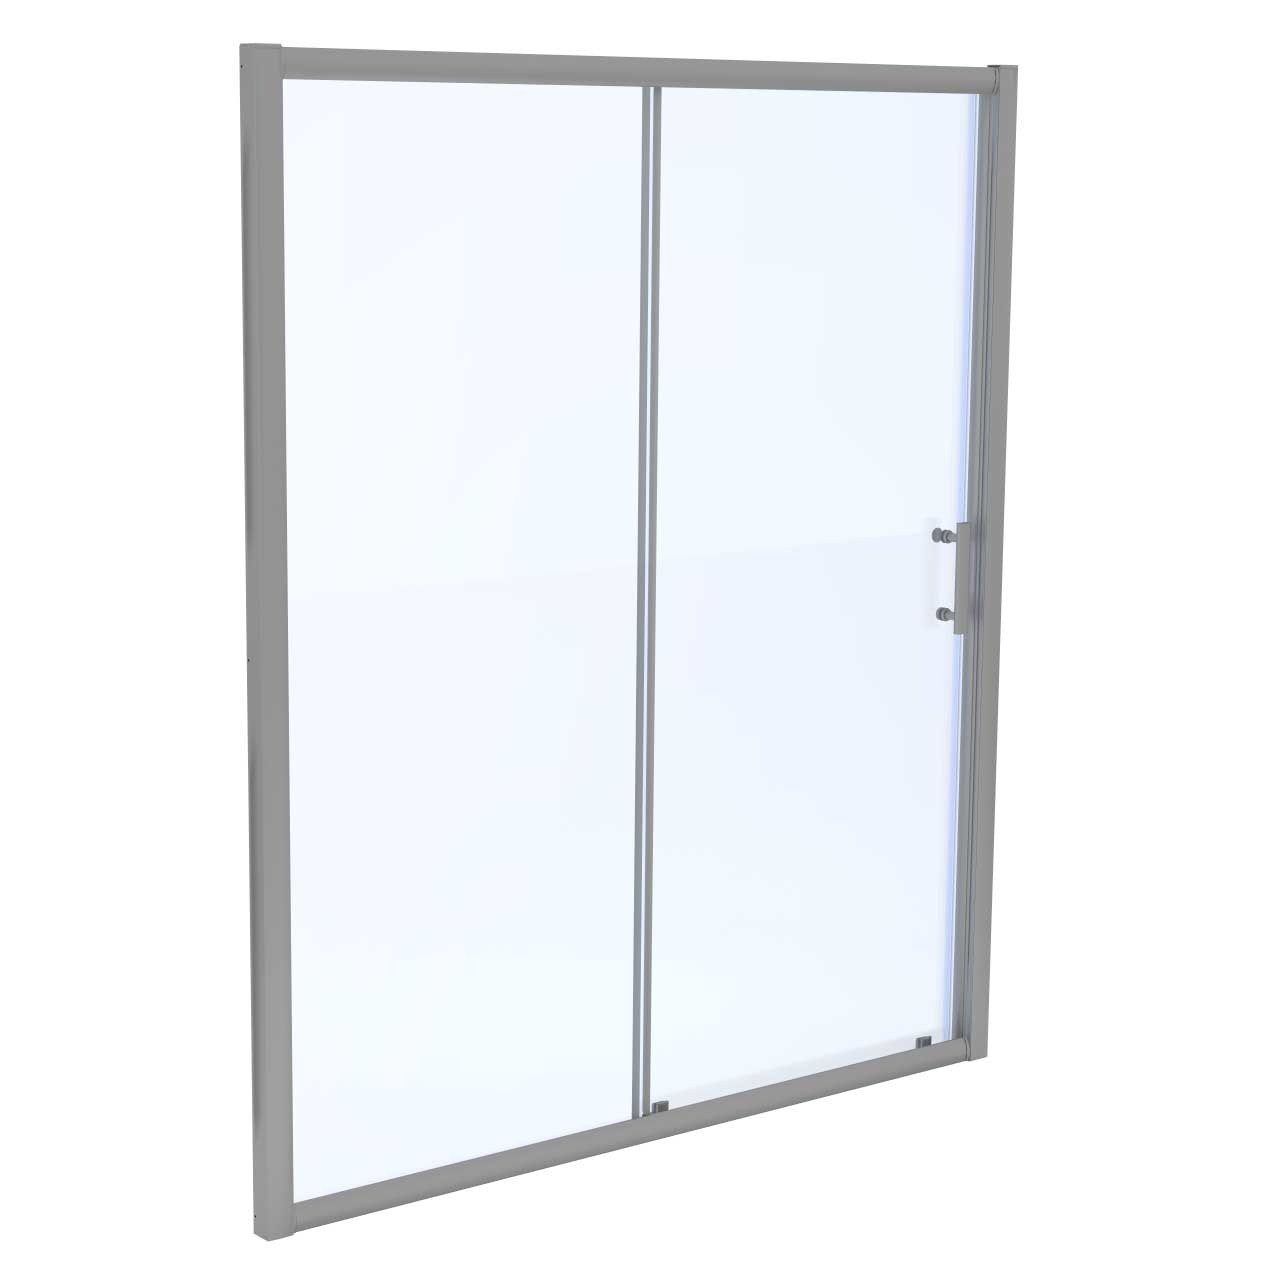 Series 6 1600mm x 700mm Sliding Door Shower Enclosure